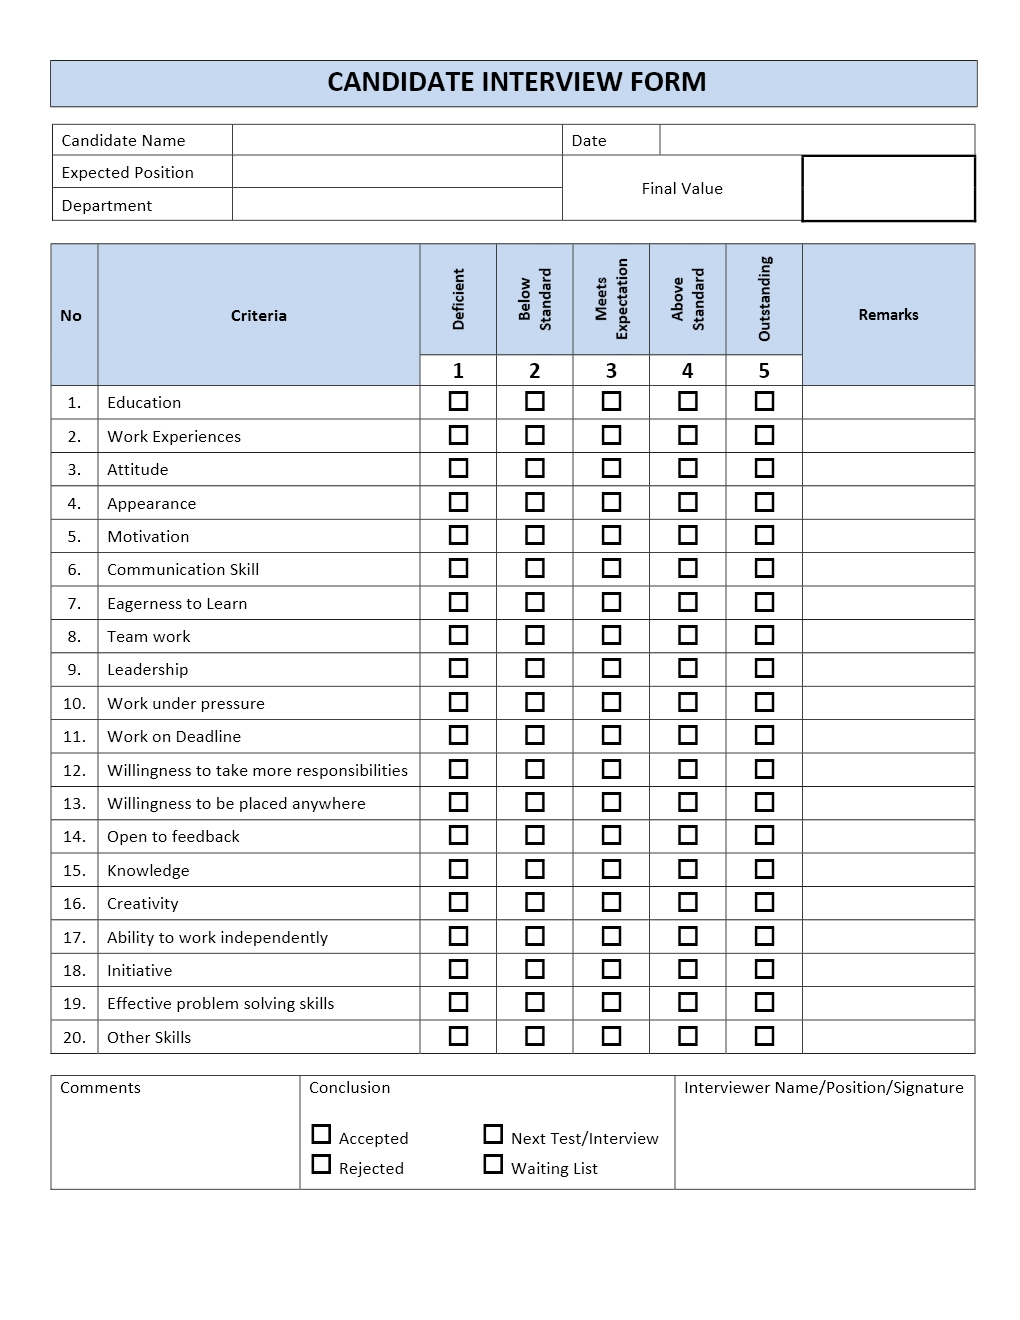 candidate application form template - candidate interview form